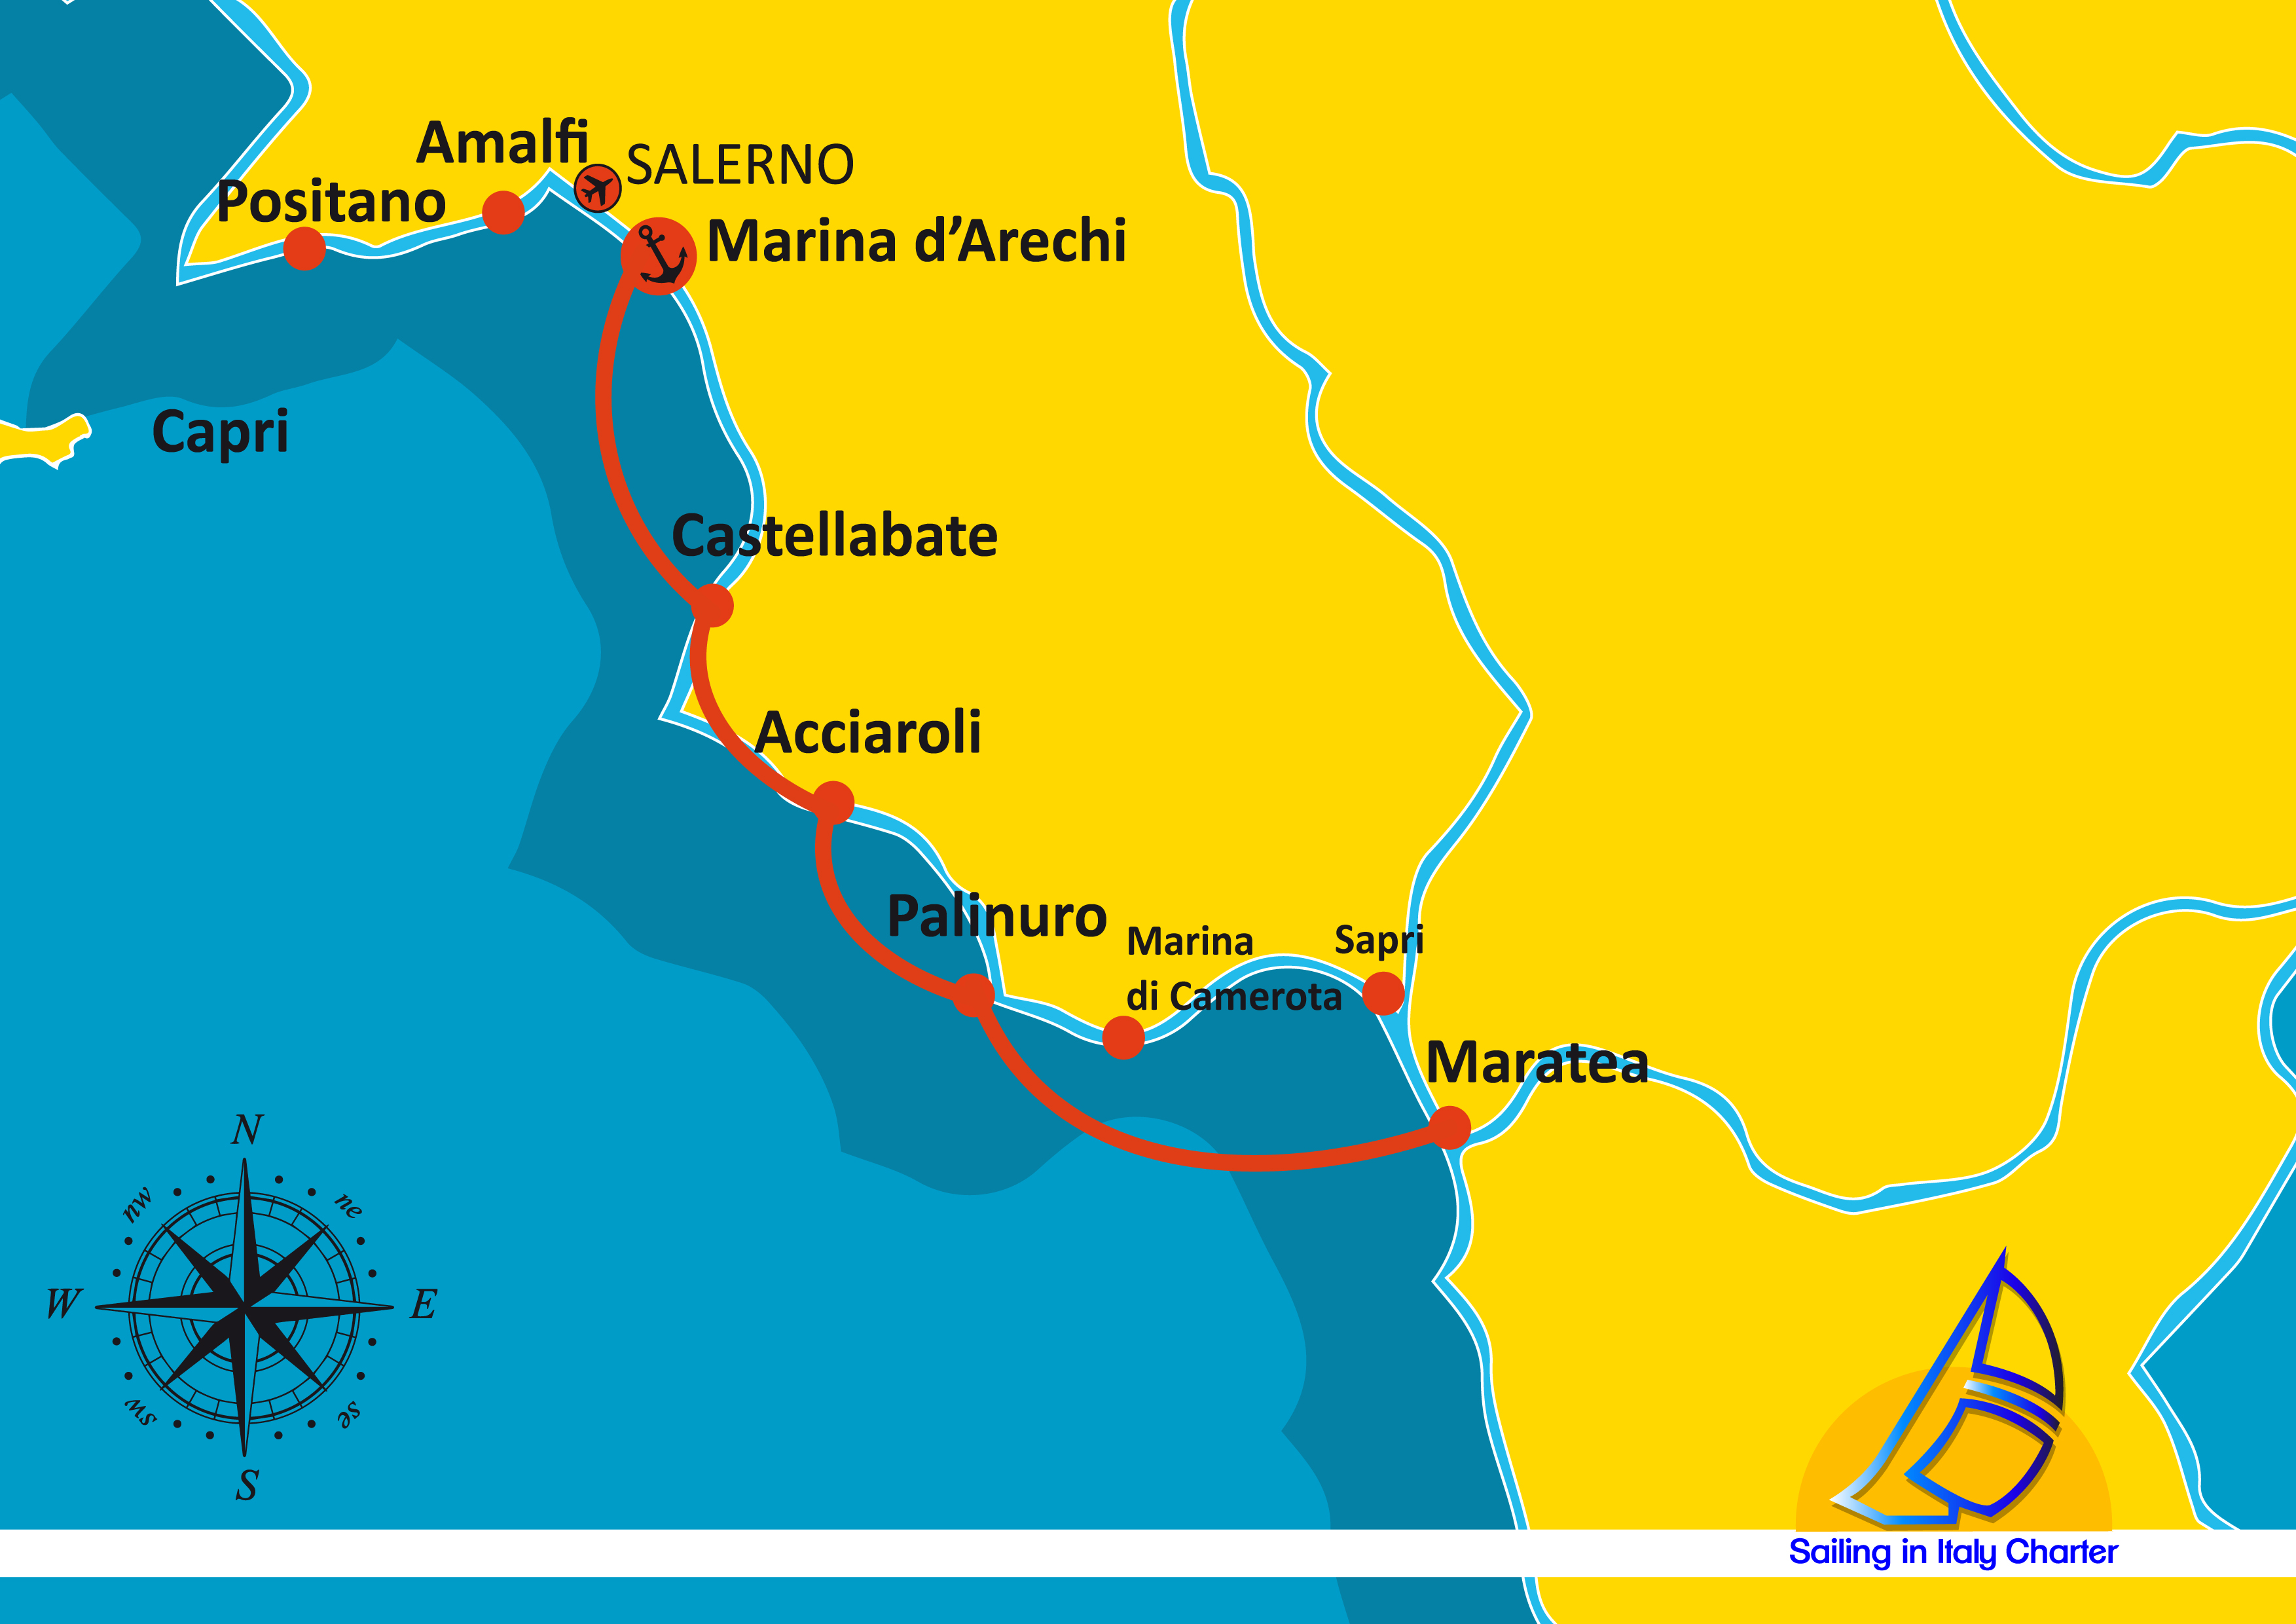 Sailing in Italy Charter, Itinerario Salerno 03 - 7 days ... on